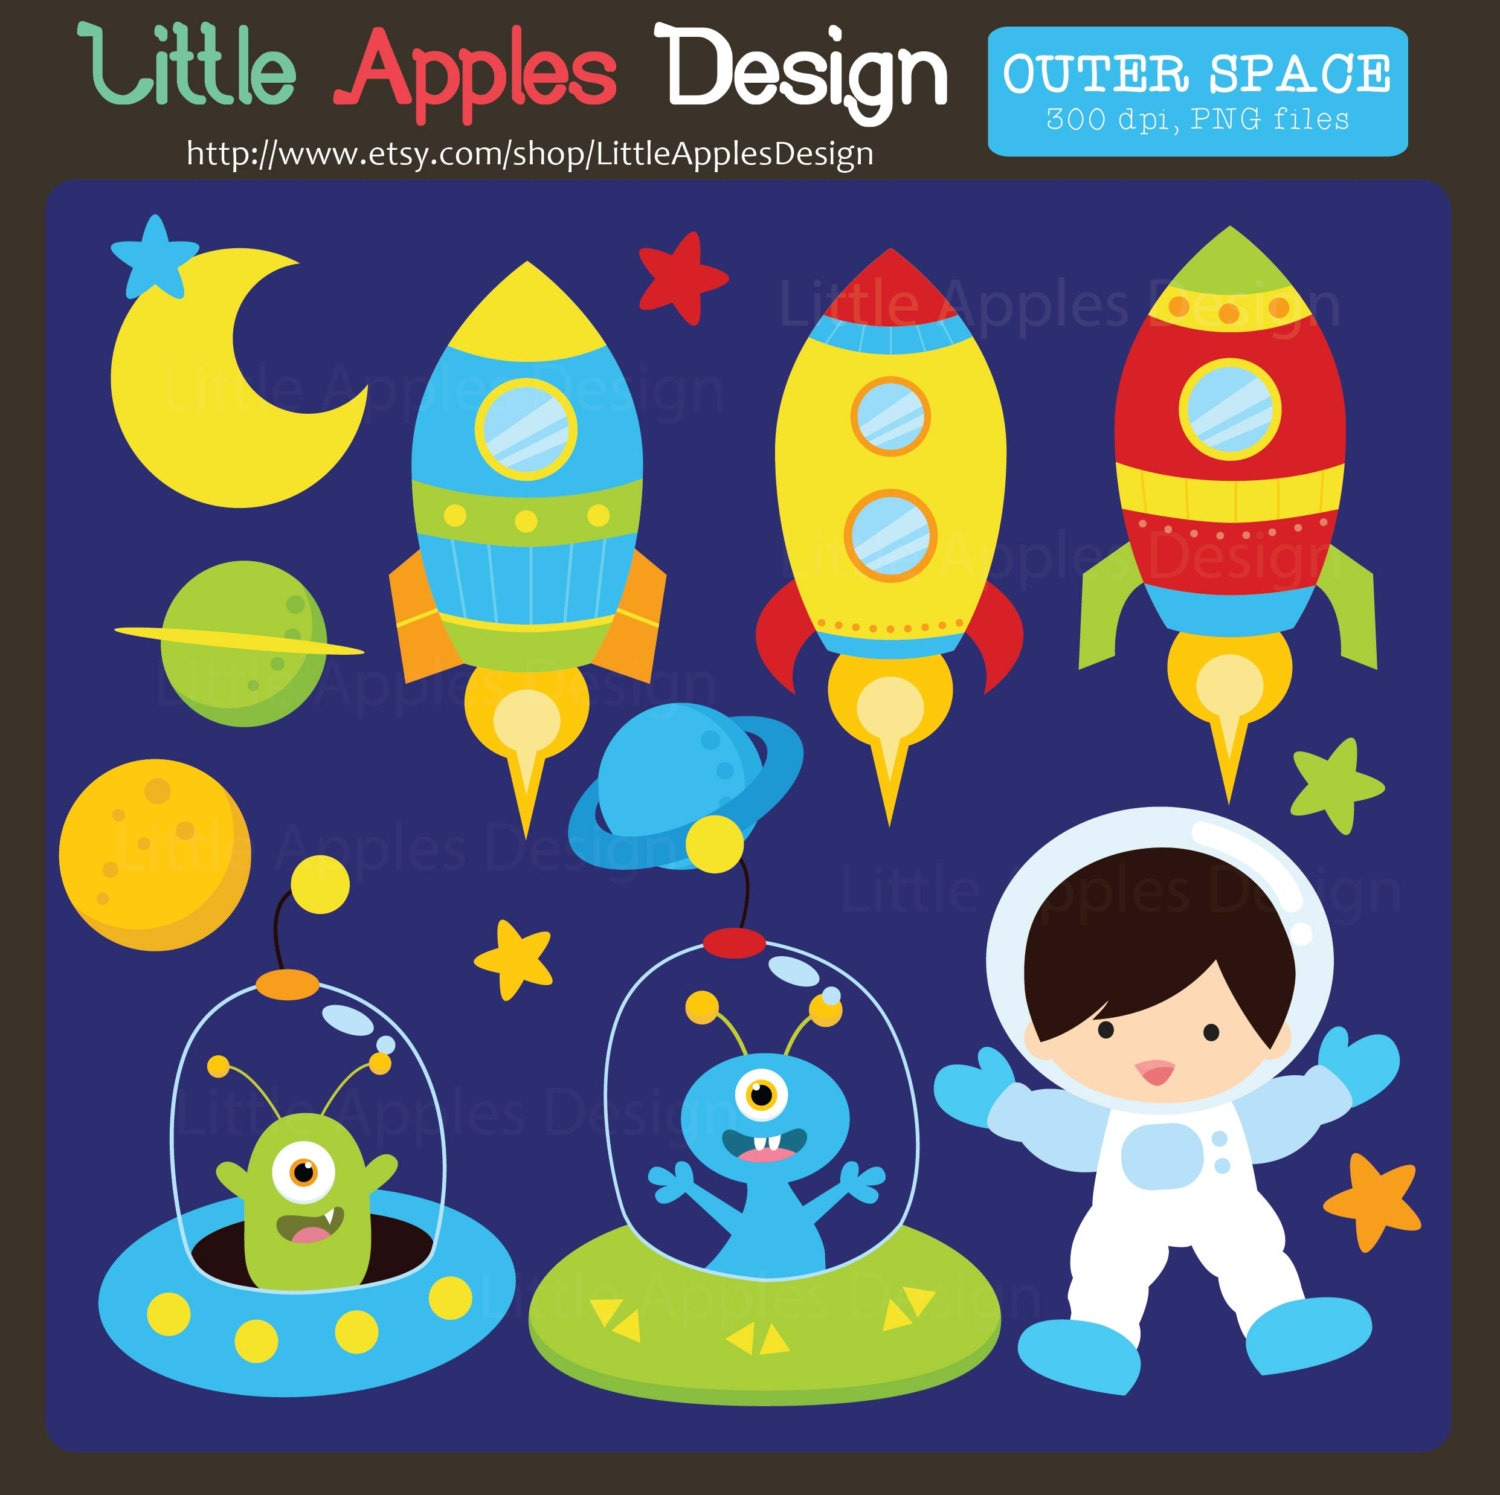 outer space clipart outer space clip art space clip art rh etsy com outer space clipart black and white cute outer space clipart